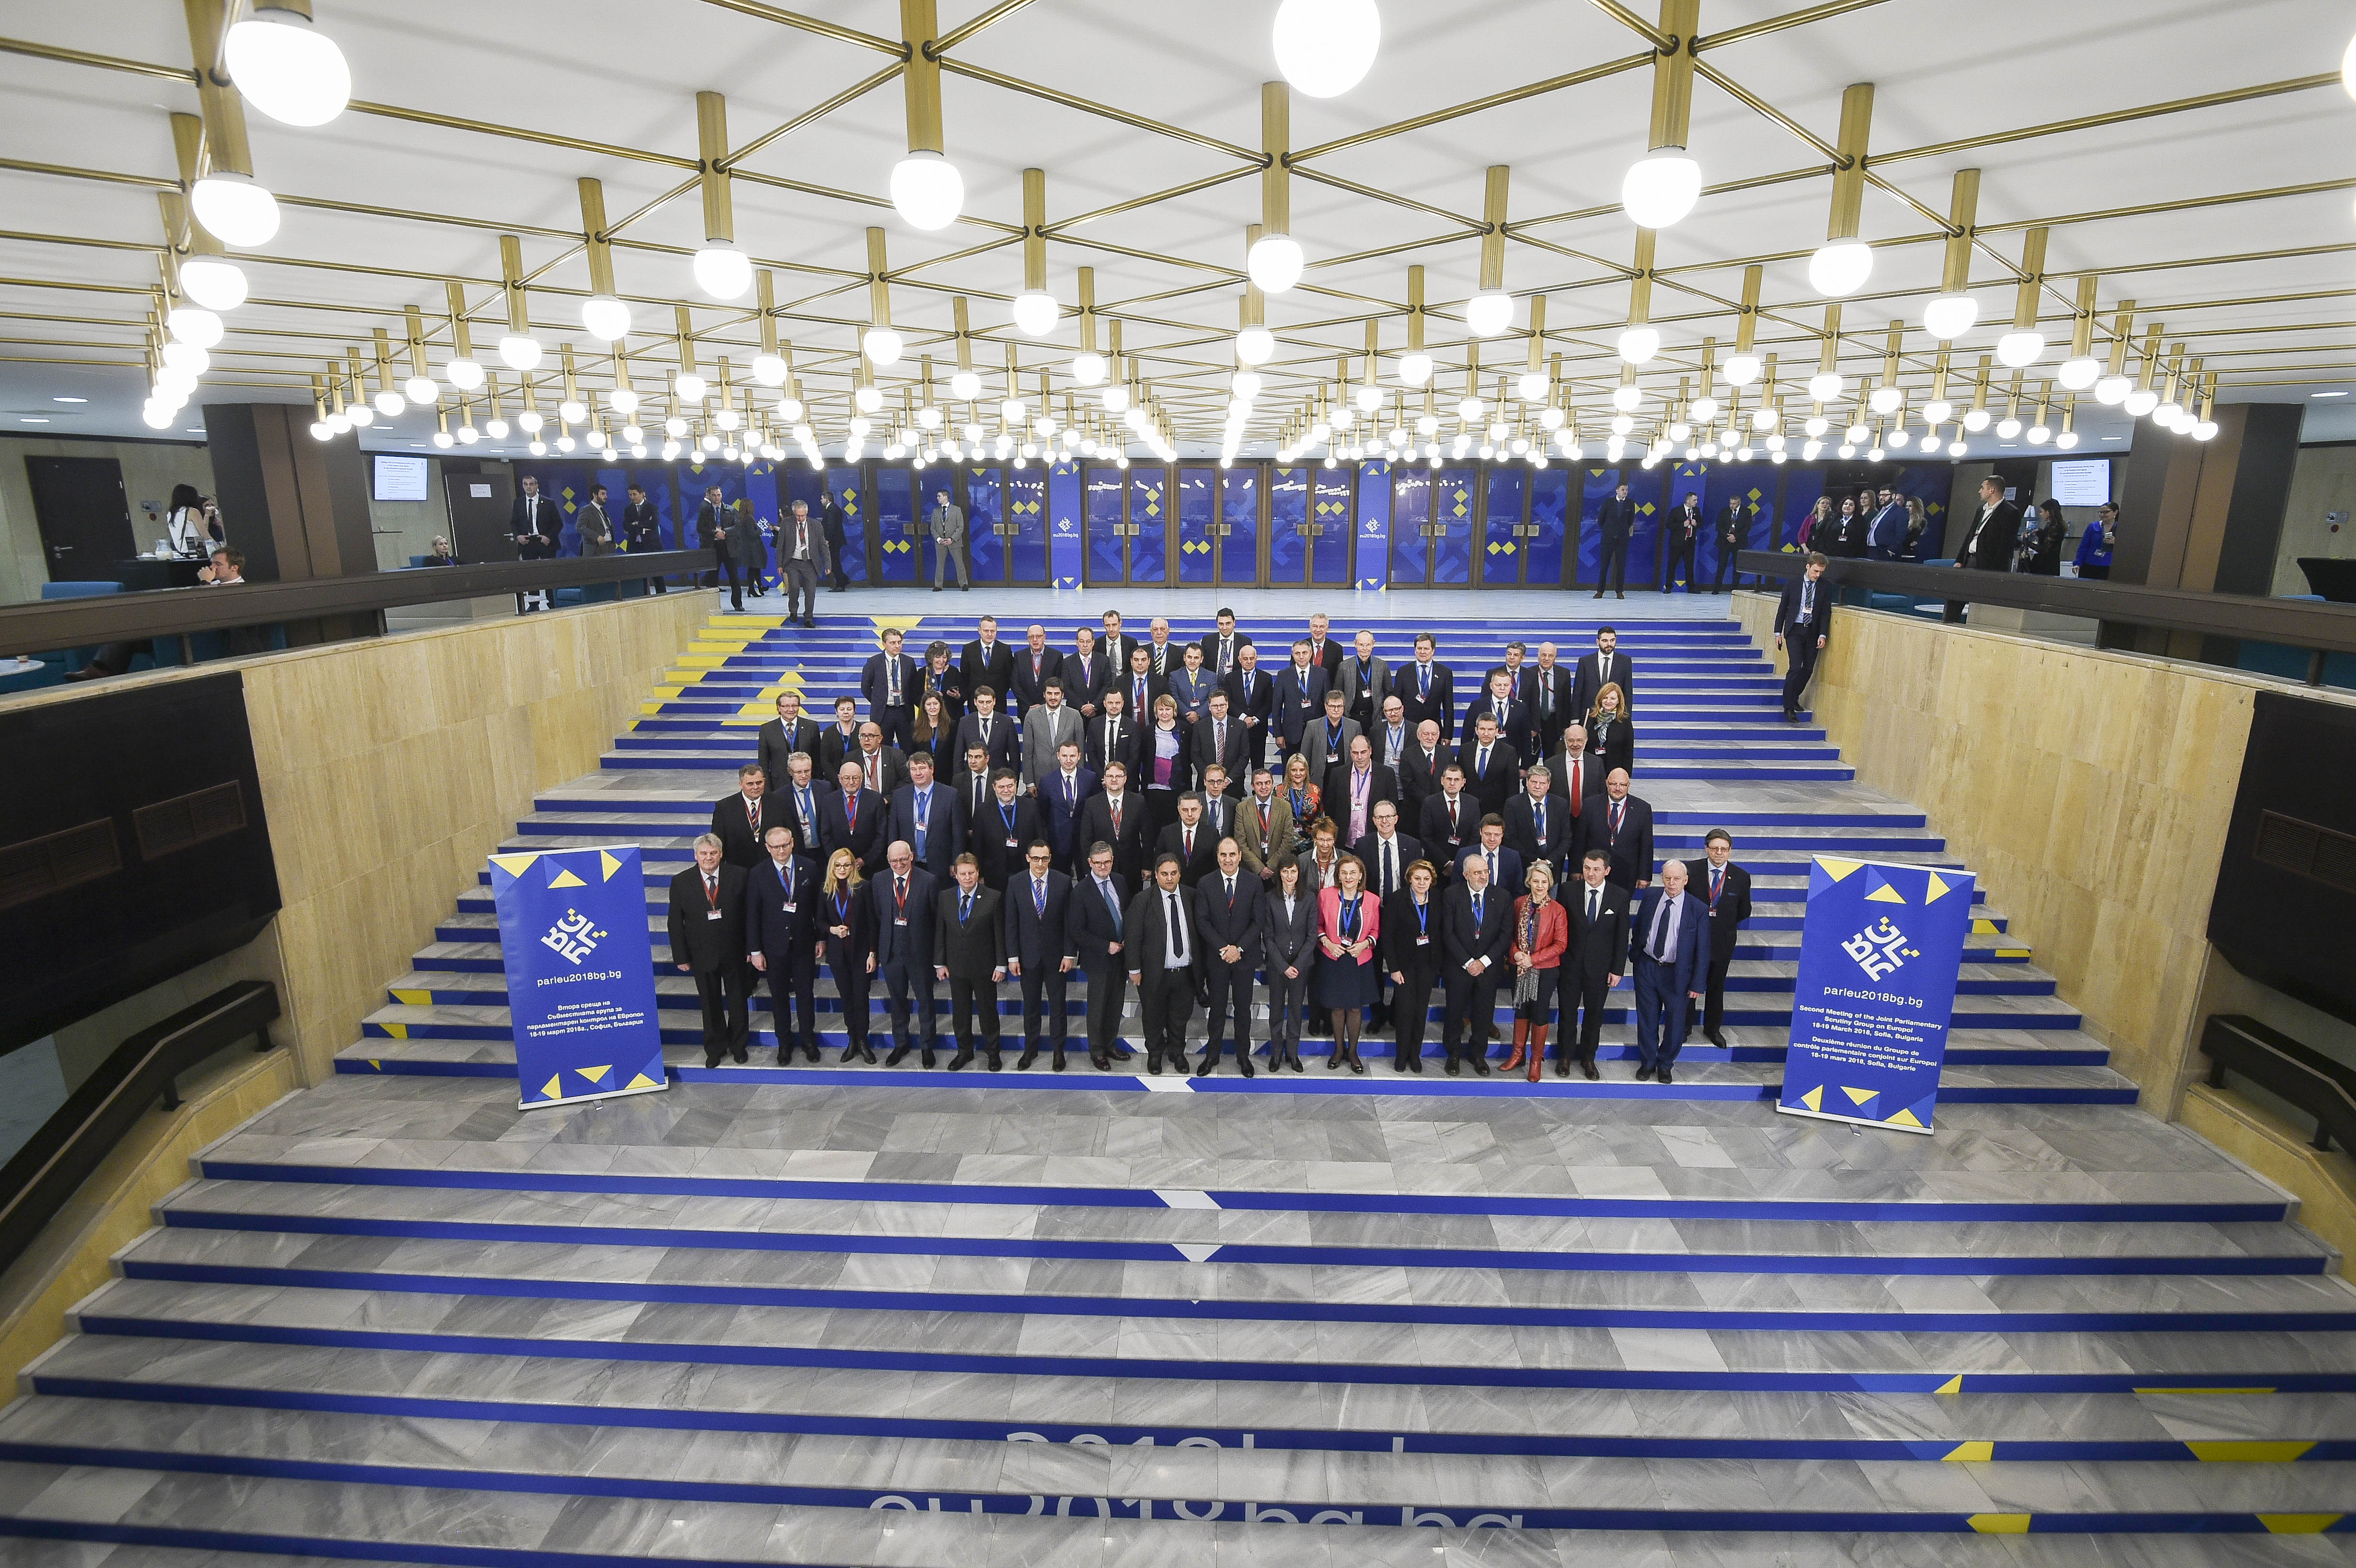 Meeting of the Joint Parliamentary Scrutiny Group on the European Union Agency for Law Enforcement Cooperation (Europol) - Family Photo